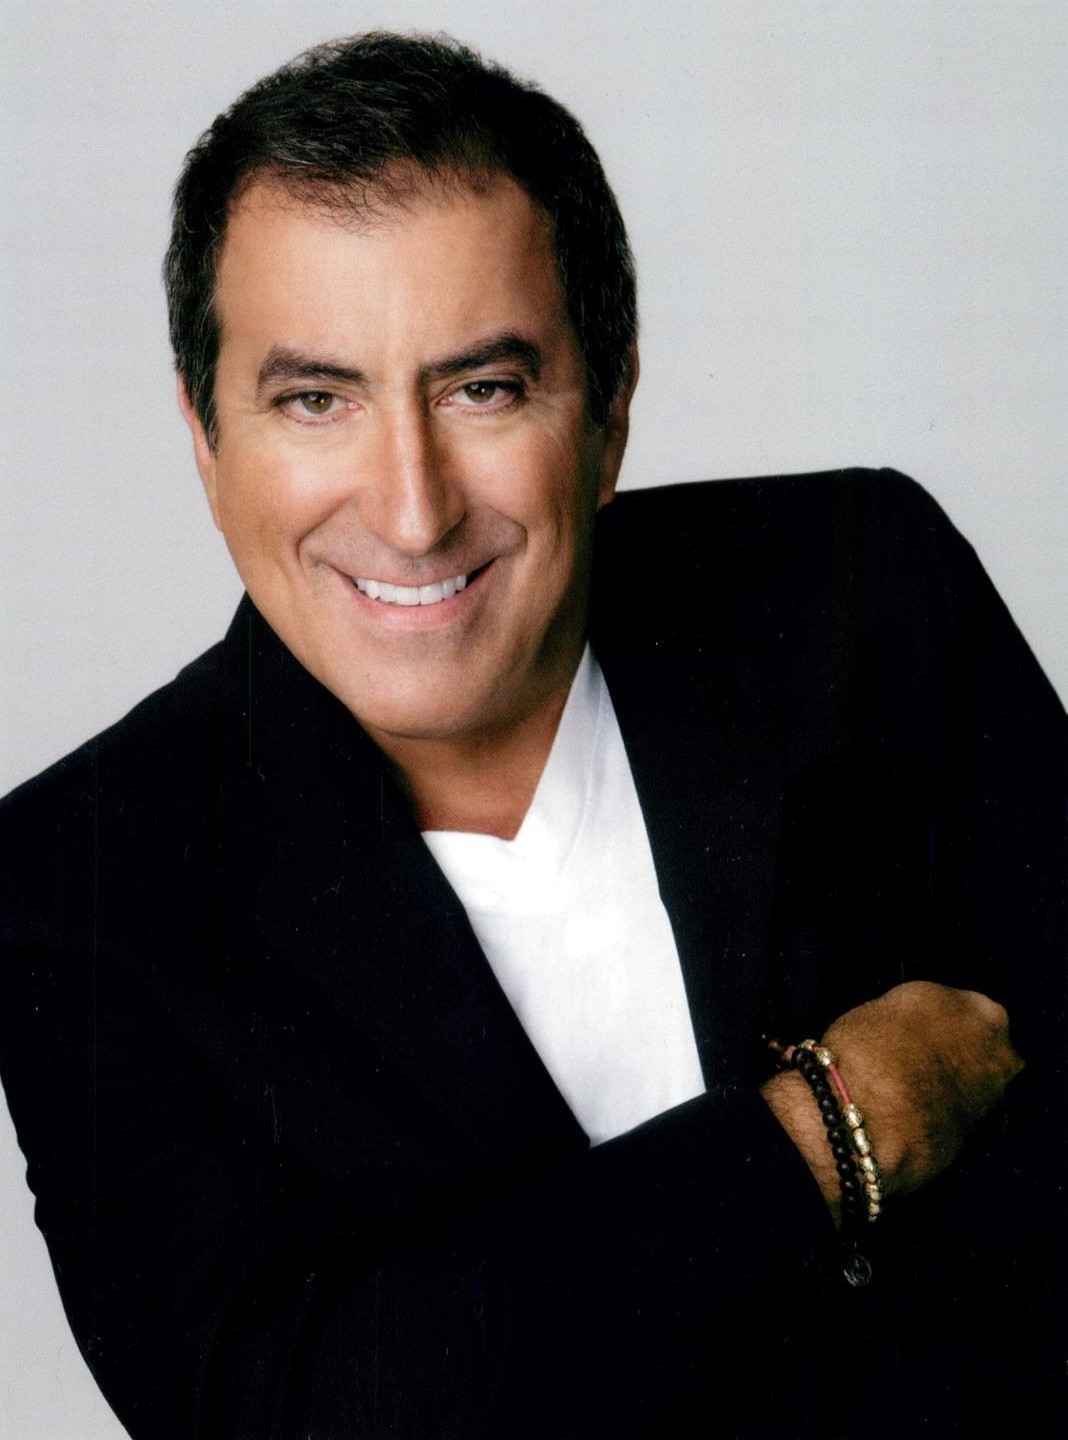 from Daniel kenny ortega gay